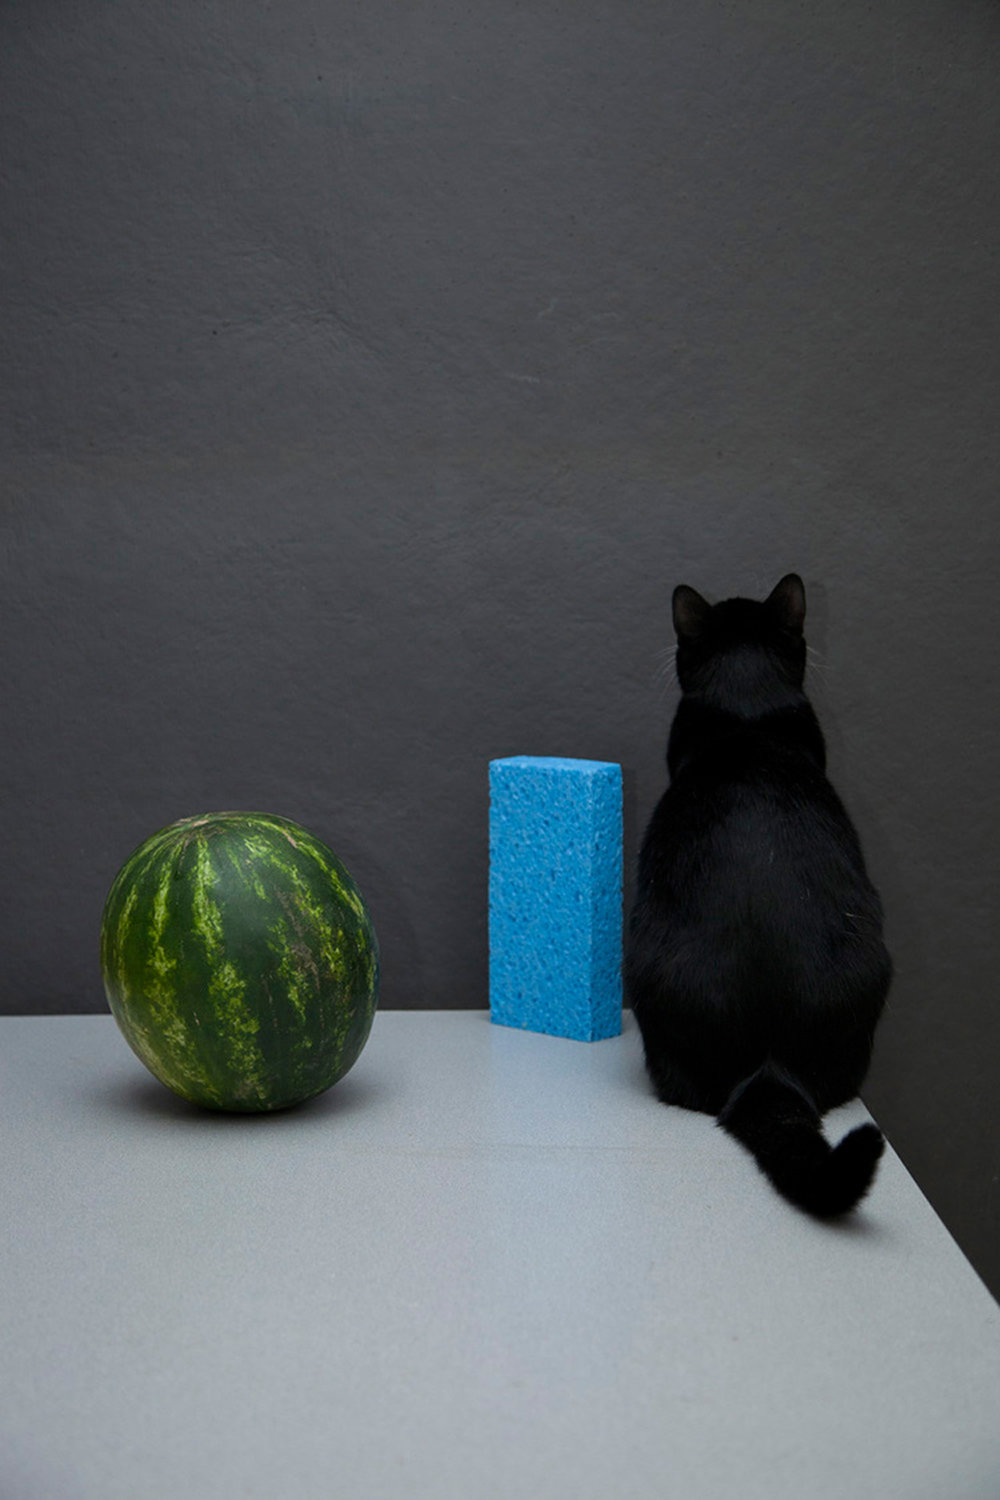 Rayburn and the Watermelon and Blue Sponge